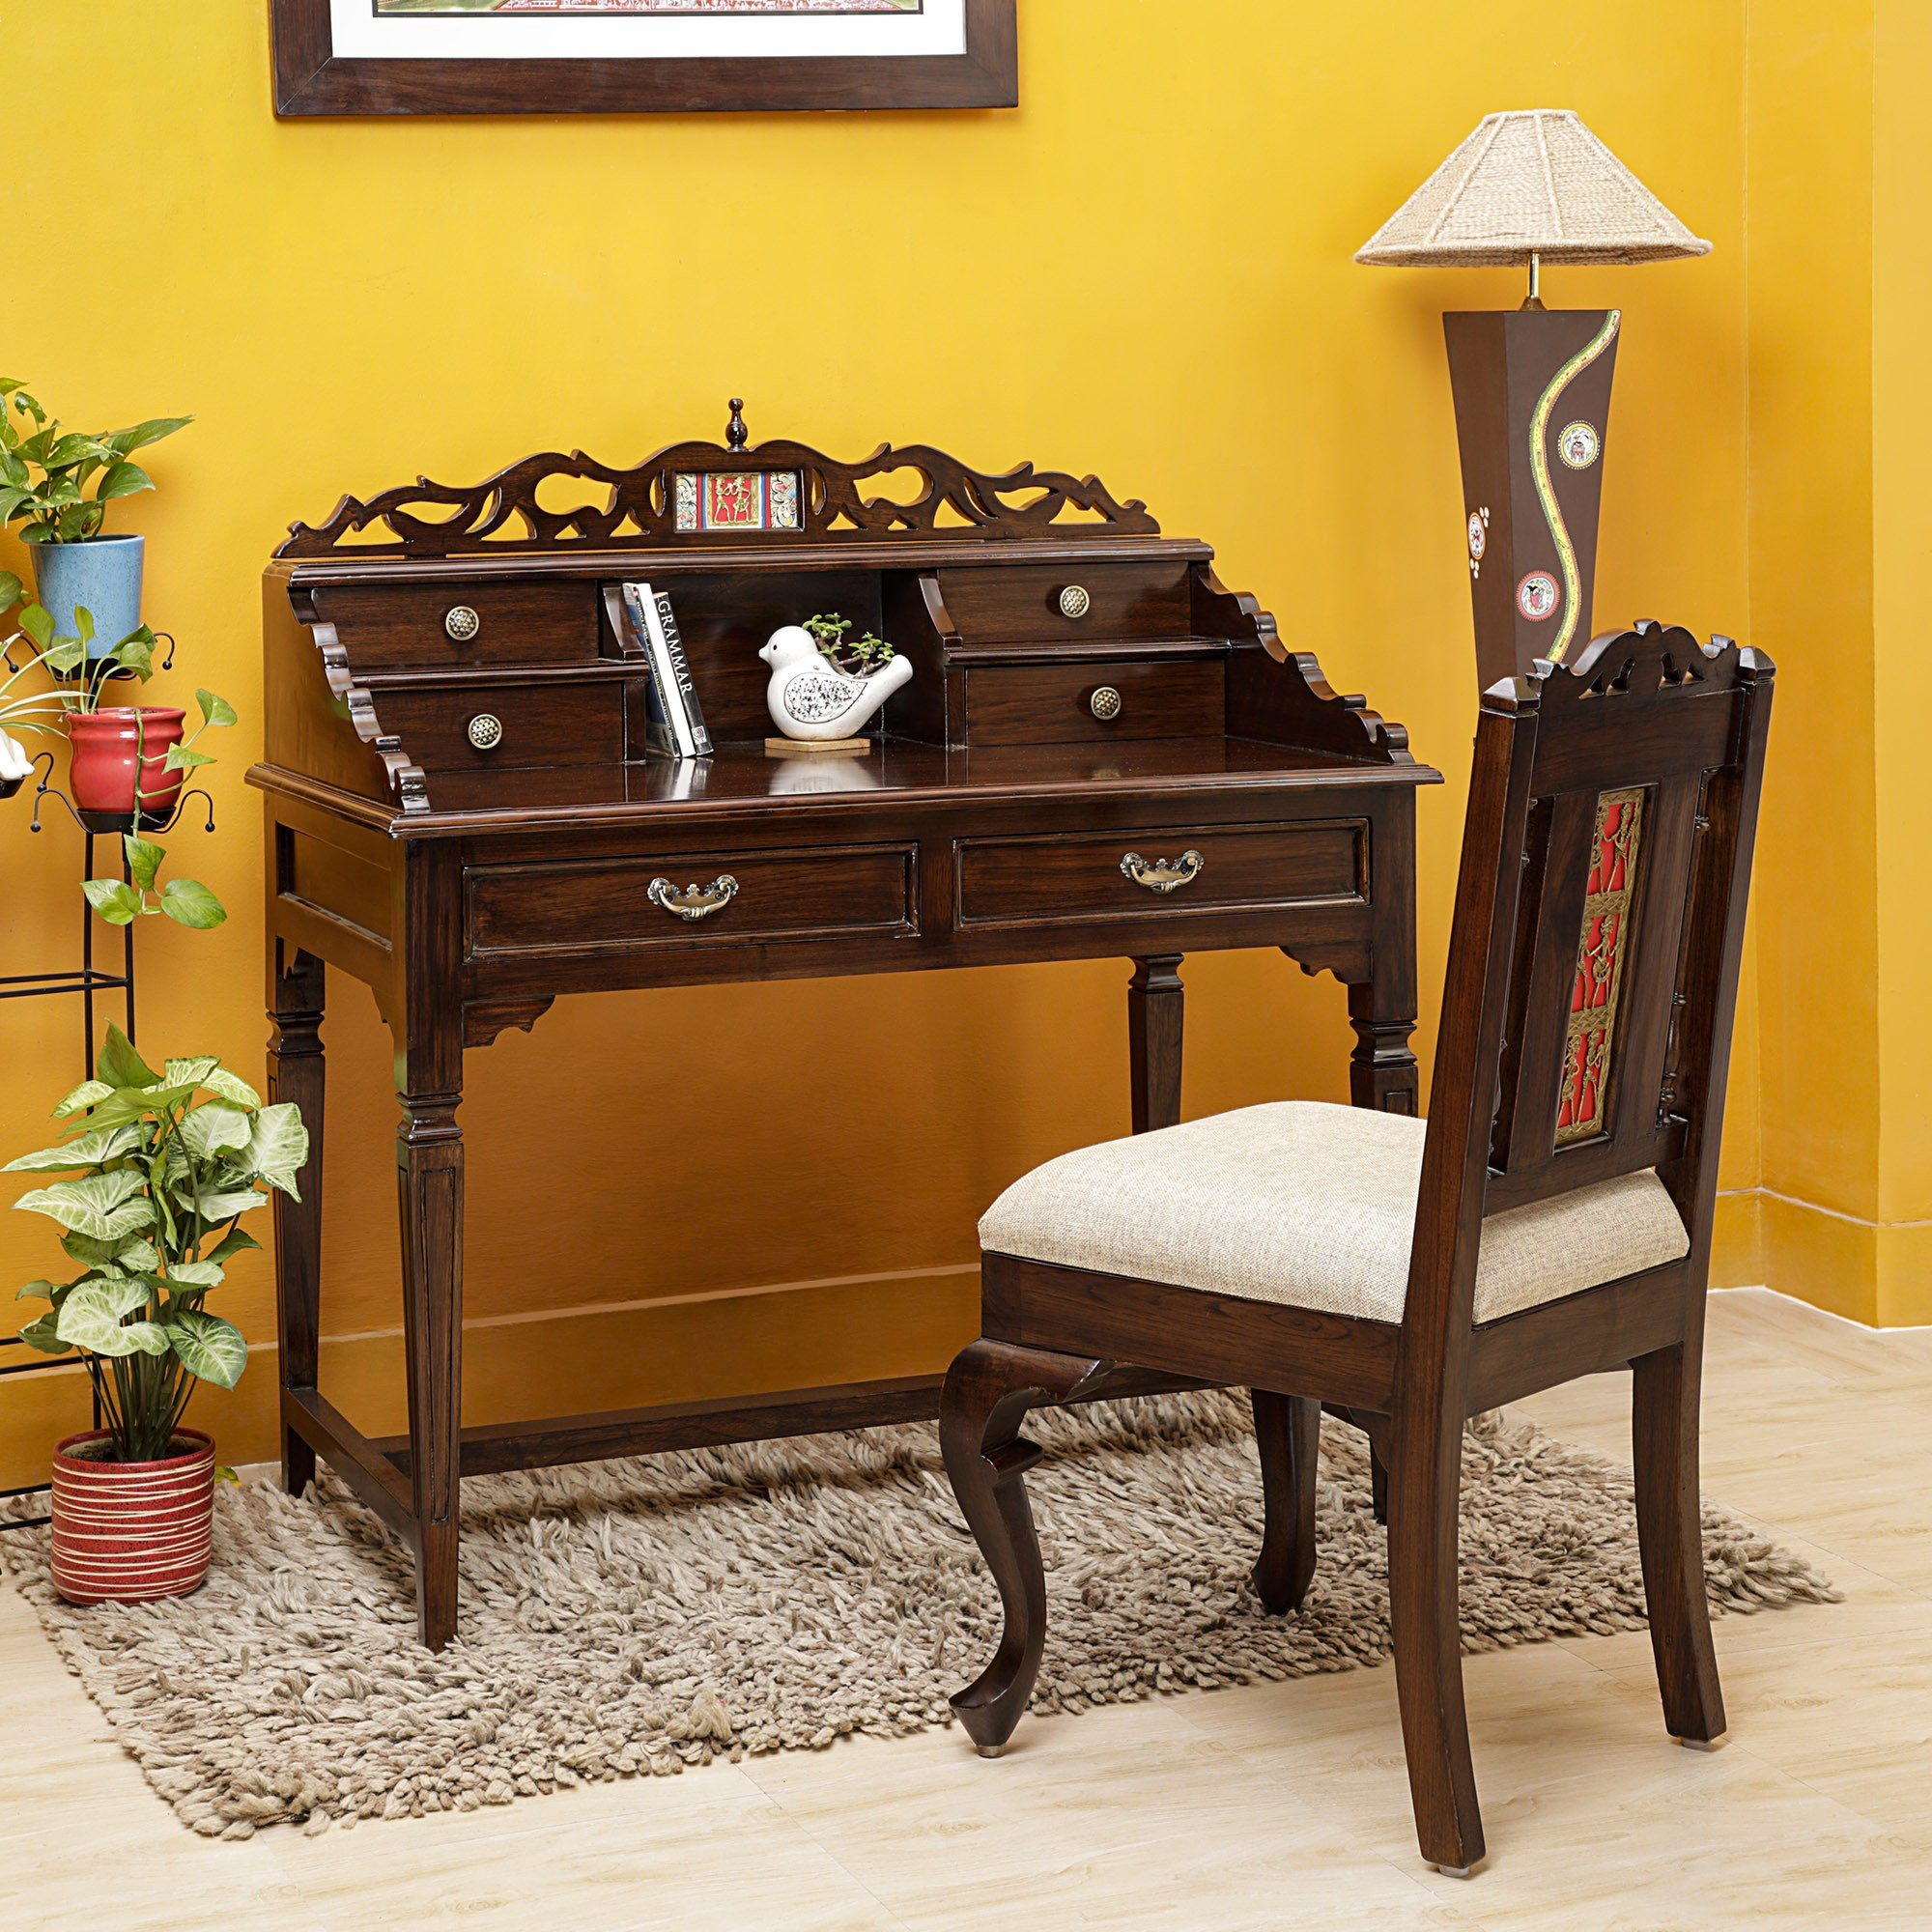 Stylish Study Table In Teakwood